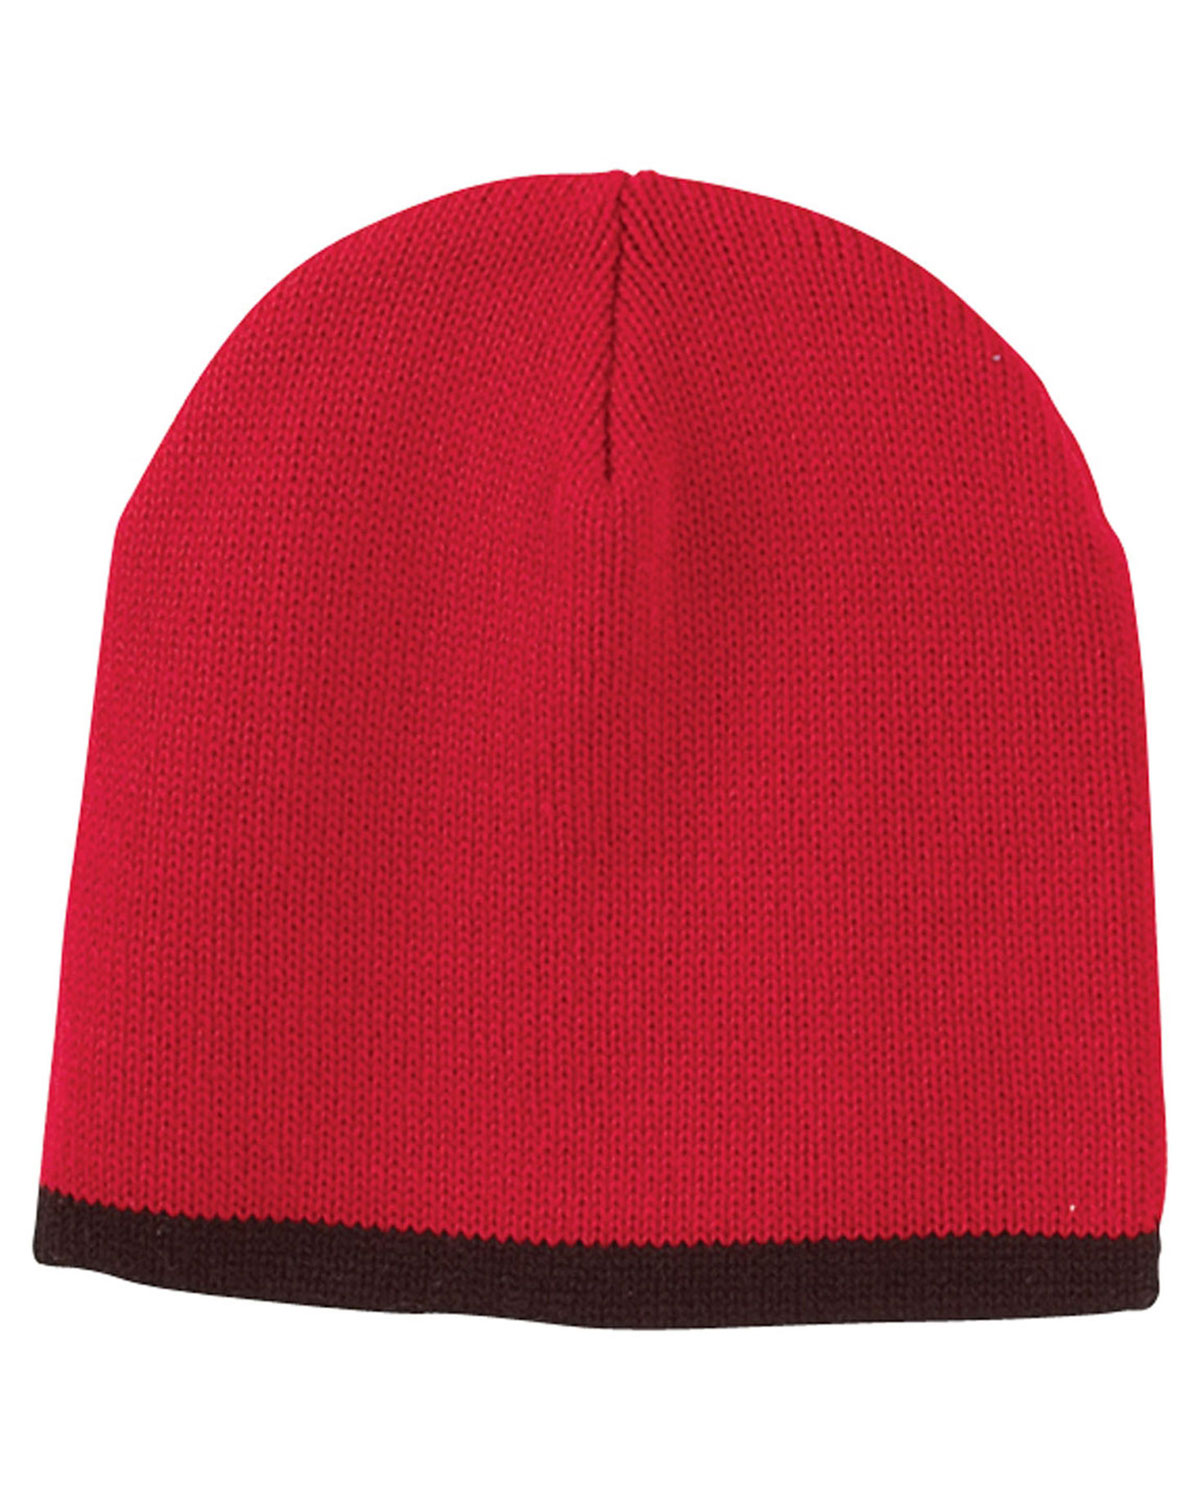 Big Accessories / BAGedge TNT Unisex Knit Cap at GotApparel